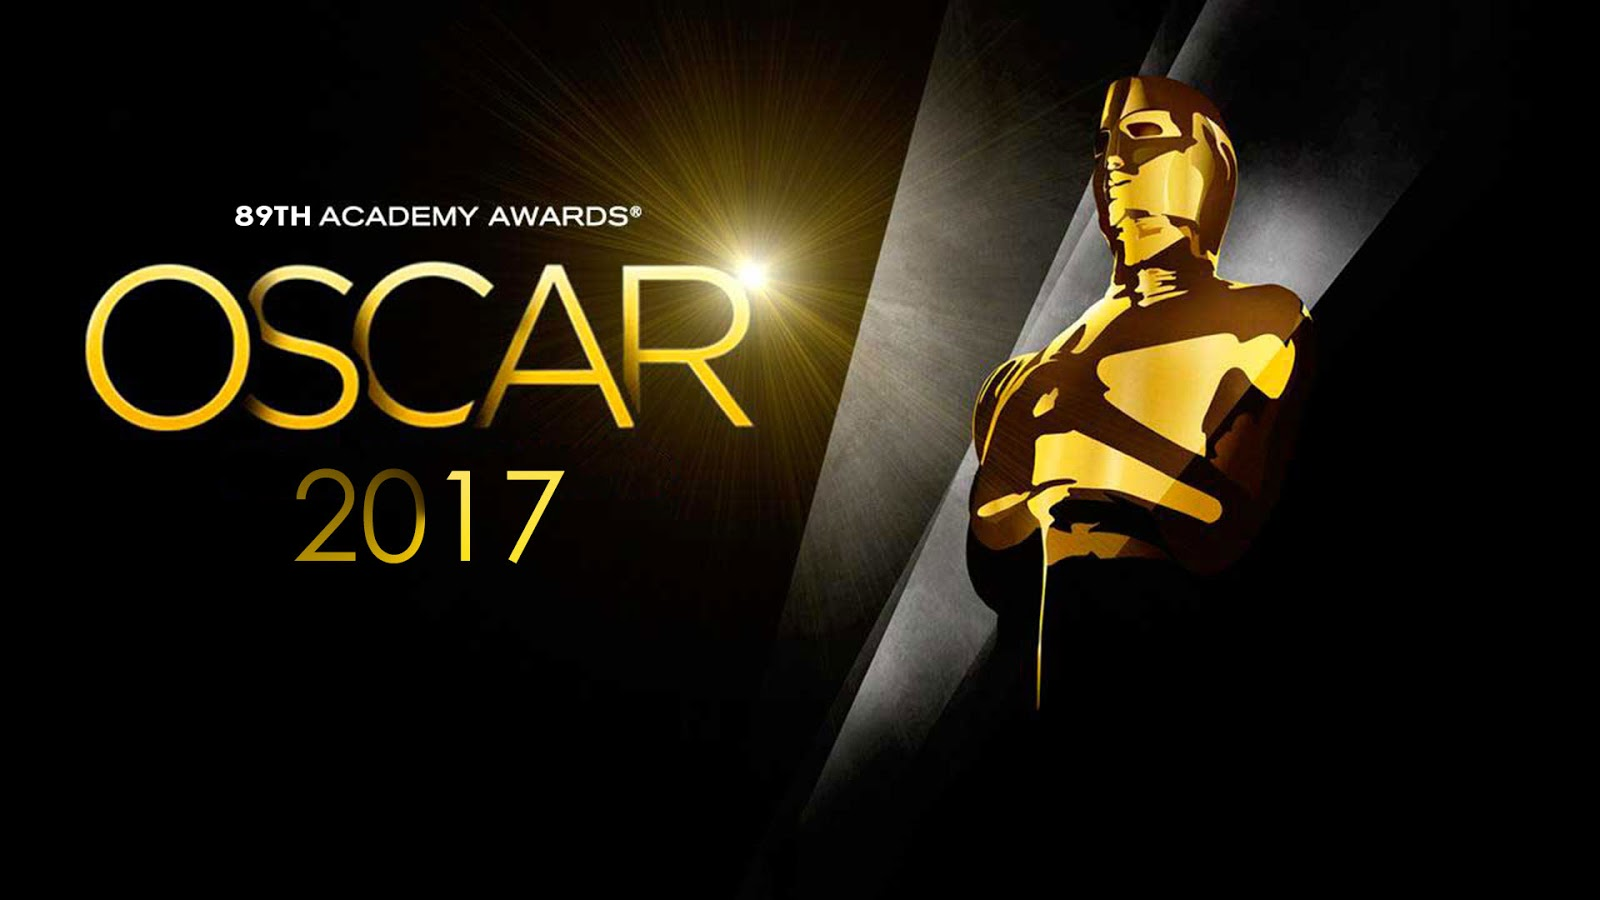 #Oscars2017 - The Academy